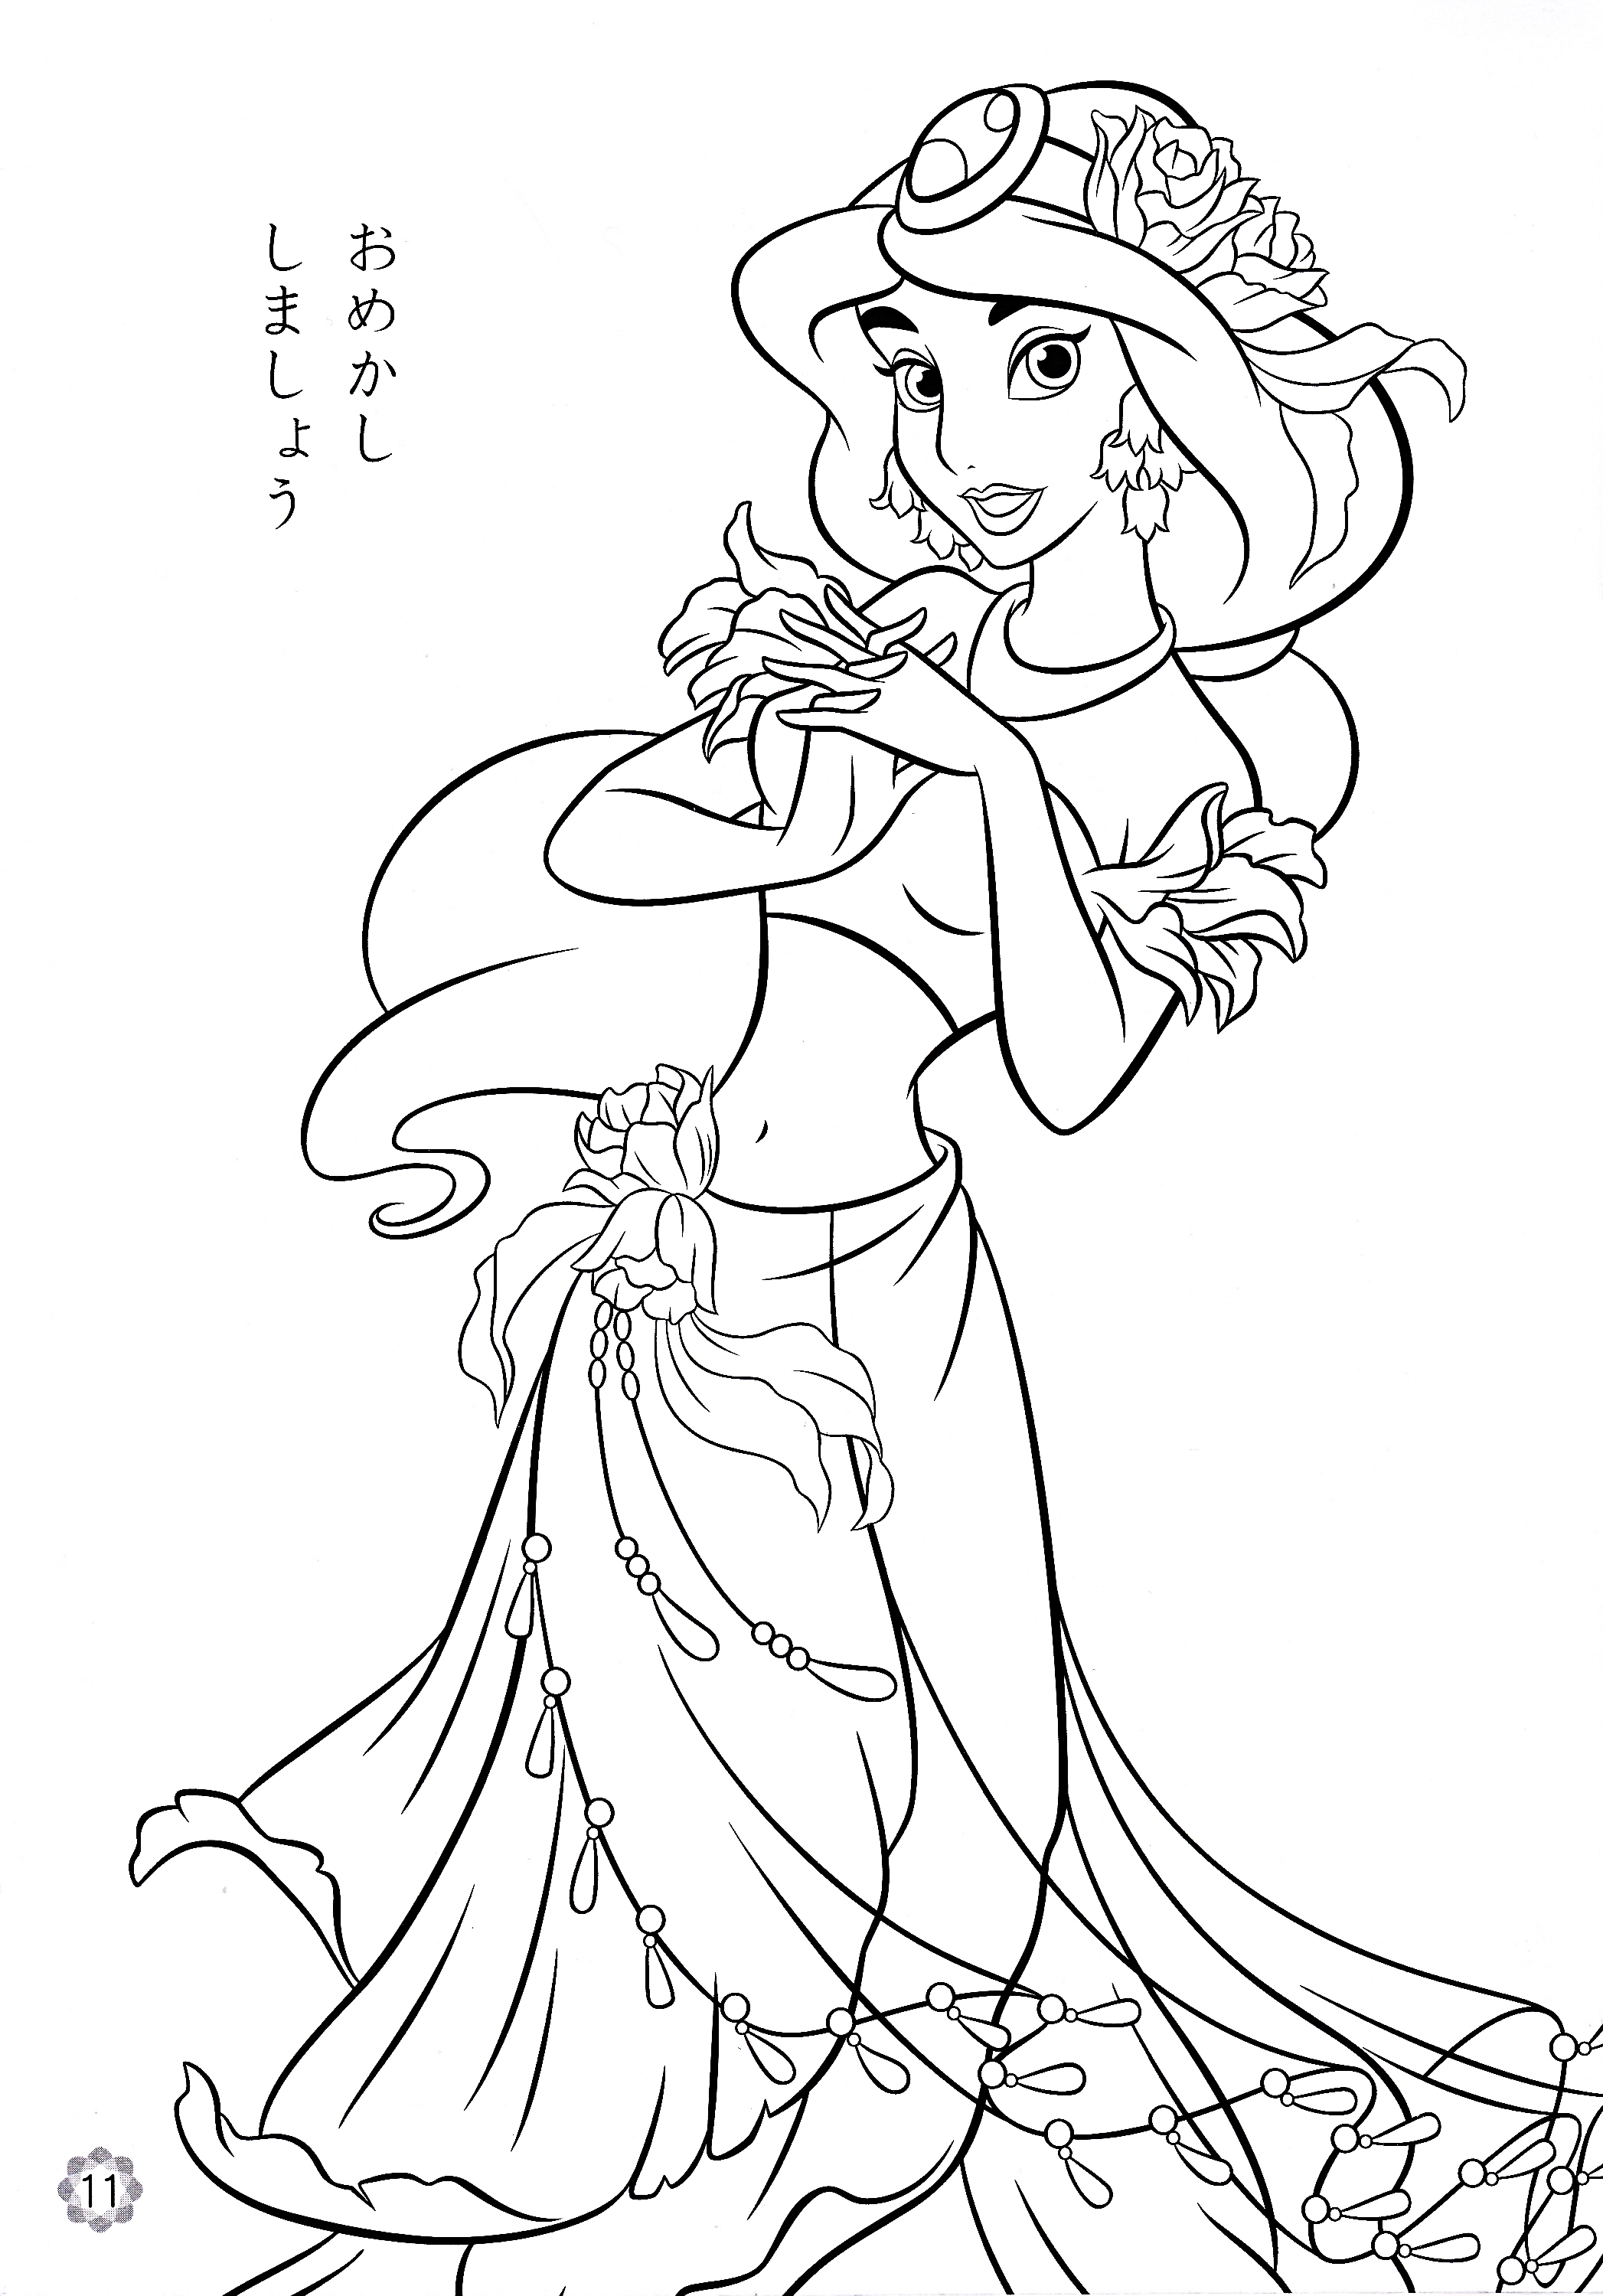 Disney Princess Images Disney Princess Coloring Pages